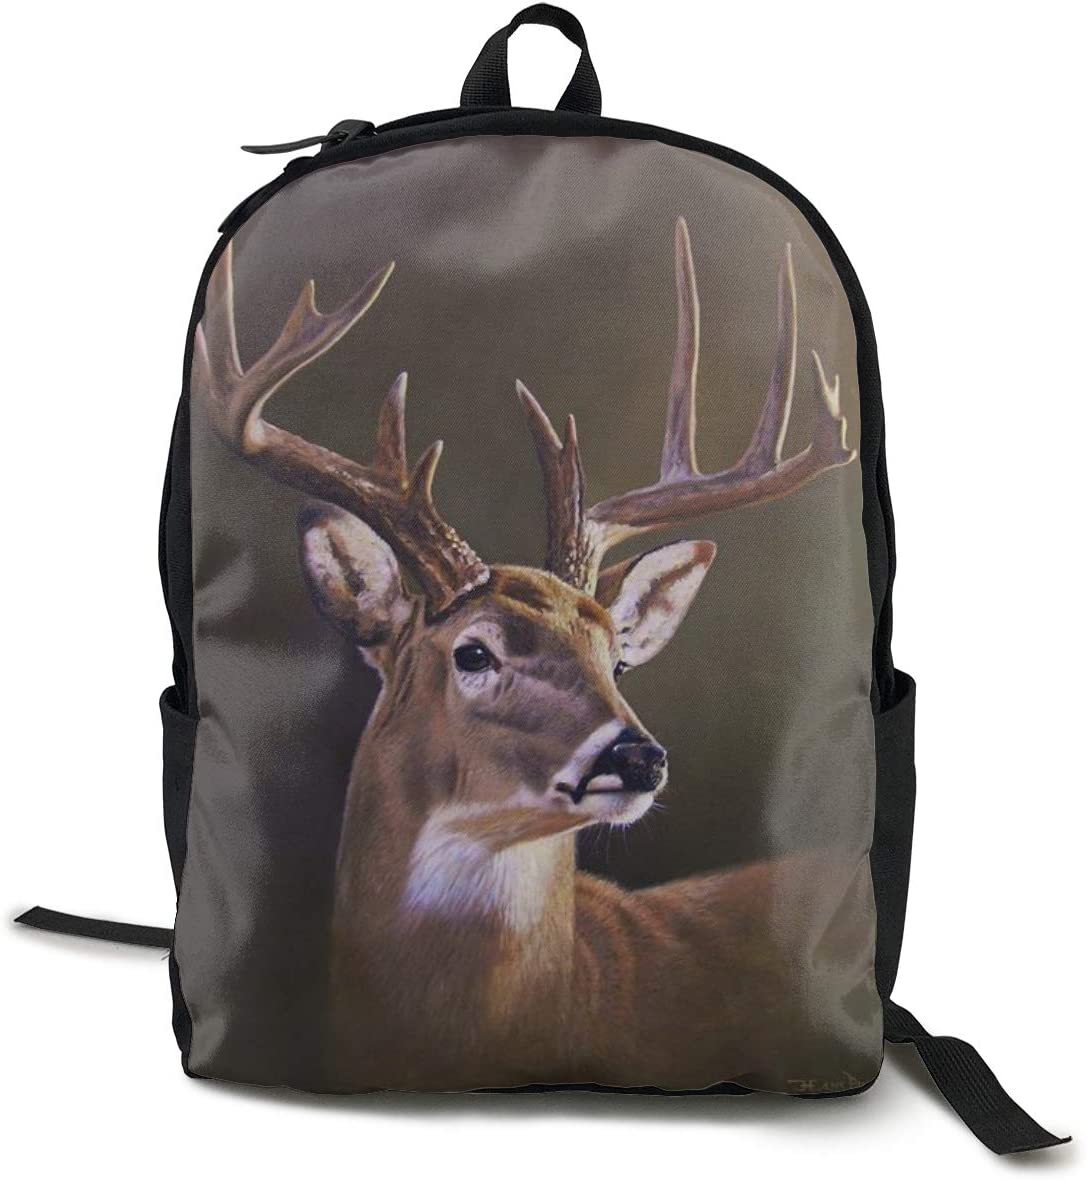 Women Men Fashion Large Capacity Anti Thief Travel Business Computer Backpack, Durable Waterproof College School Students Bookbag - Nature Deer Paintings